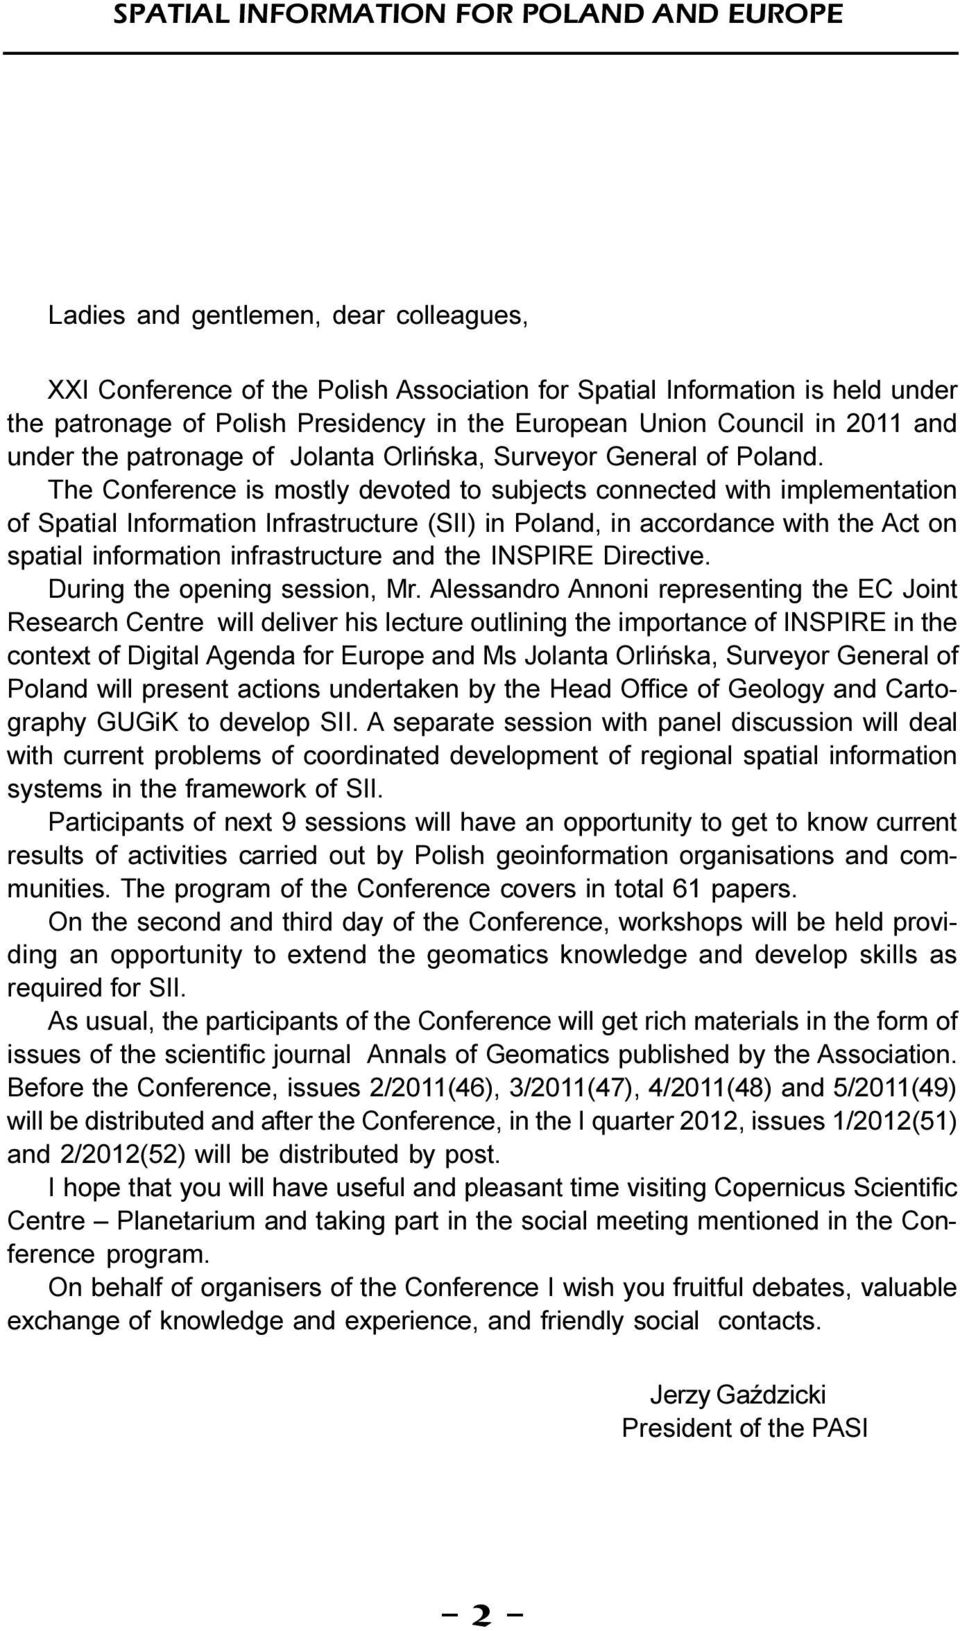 The Conference is ostly devoted to subjects connected with ipleentation of Spatial Inforation Infrastructure (SII) in Poland, in accordance with the Act on spatial inforation infrastructure and the